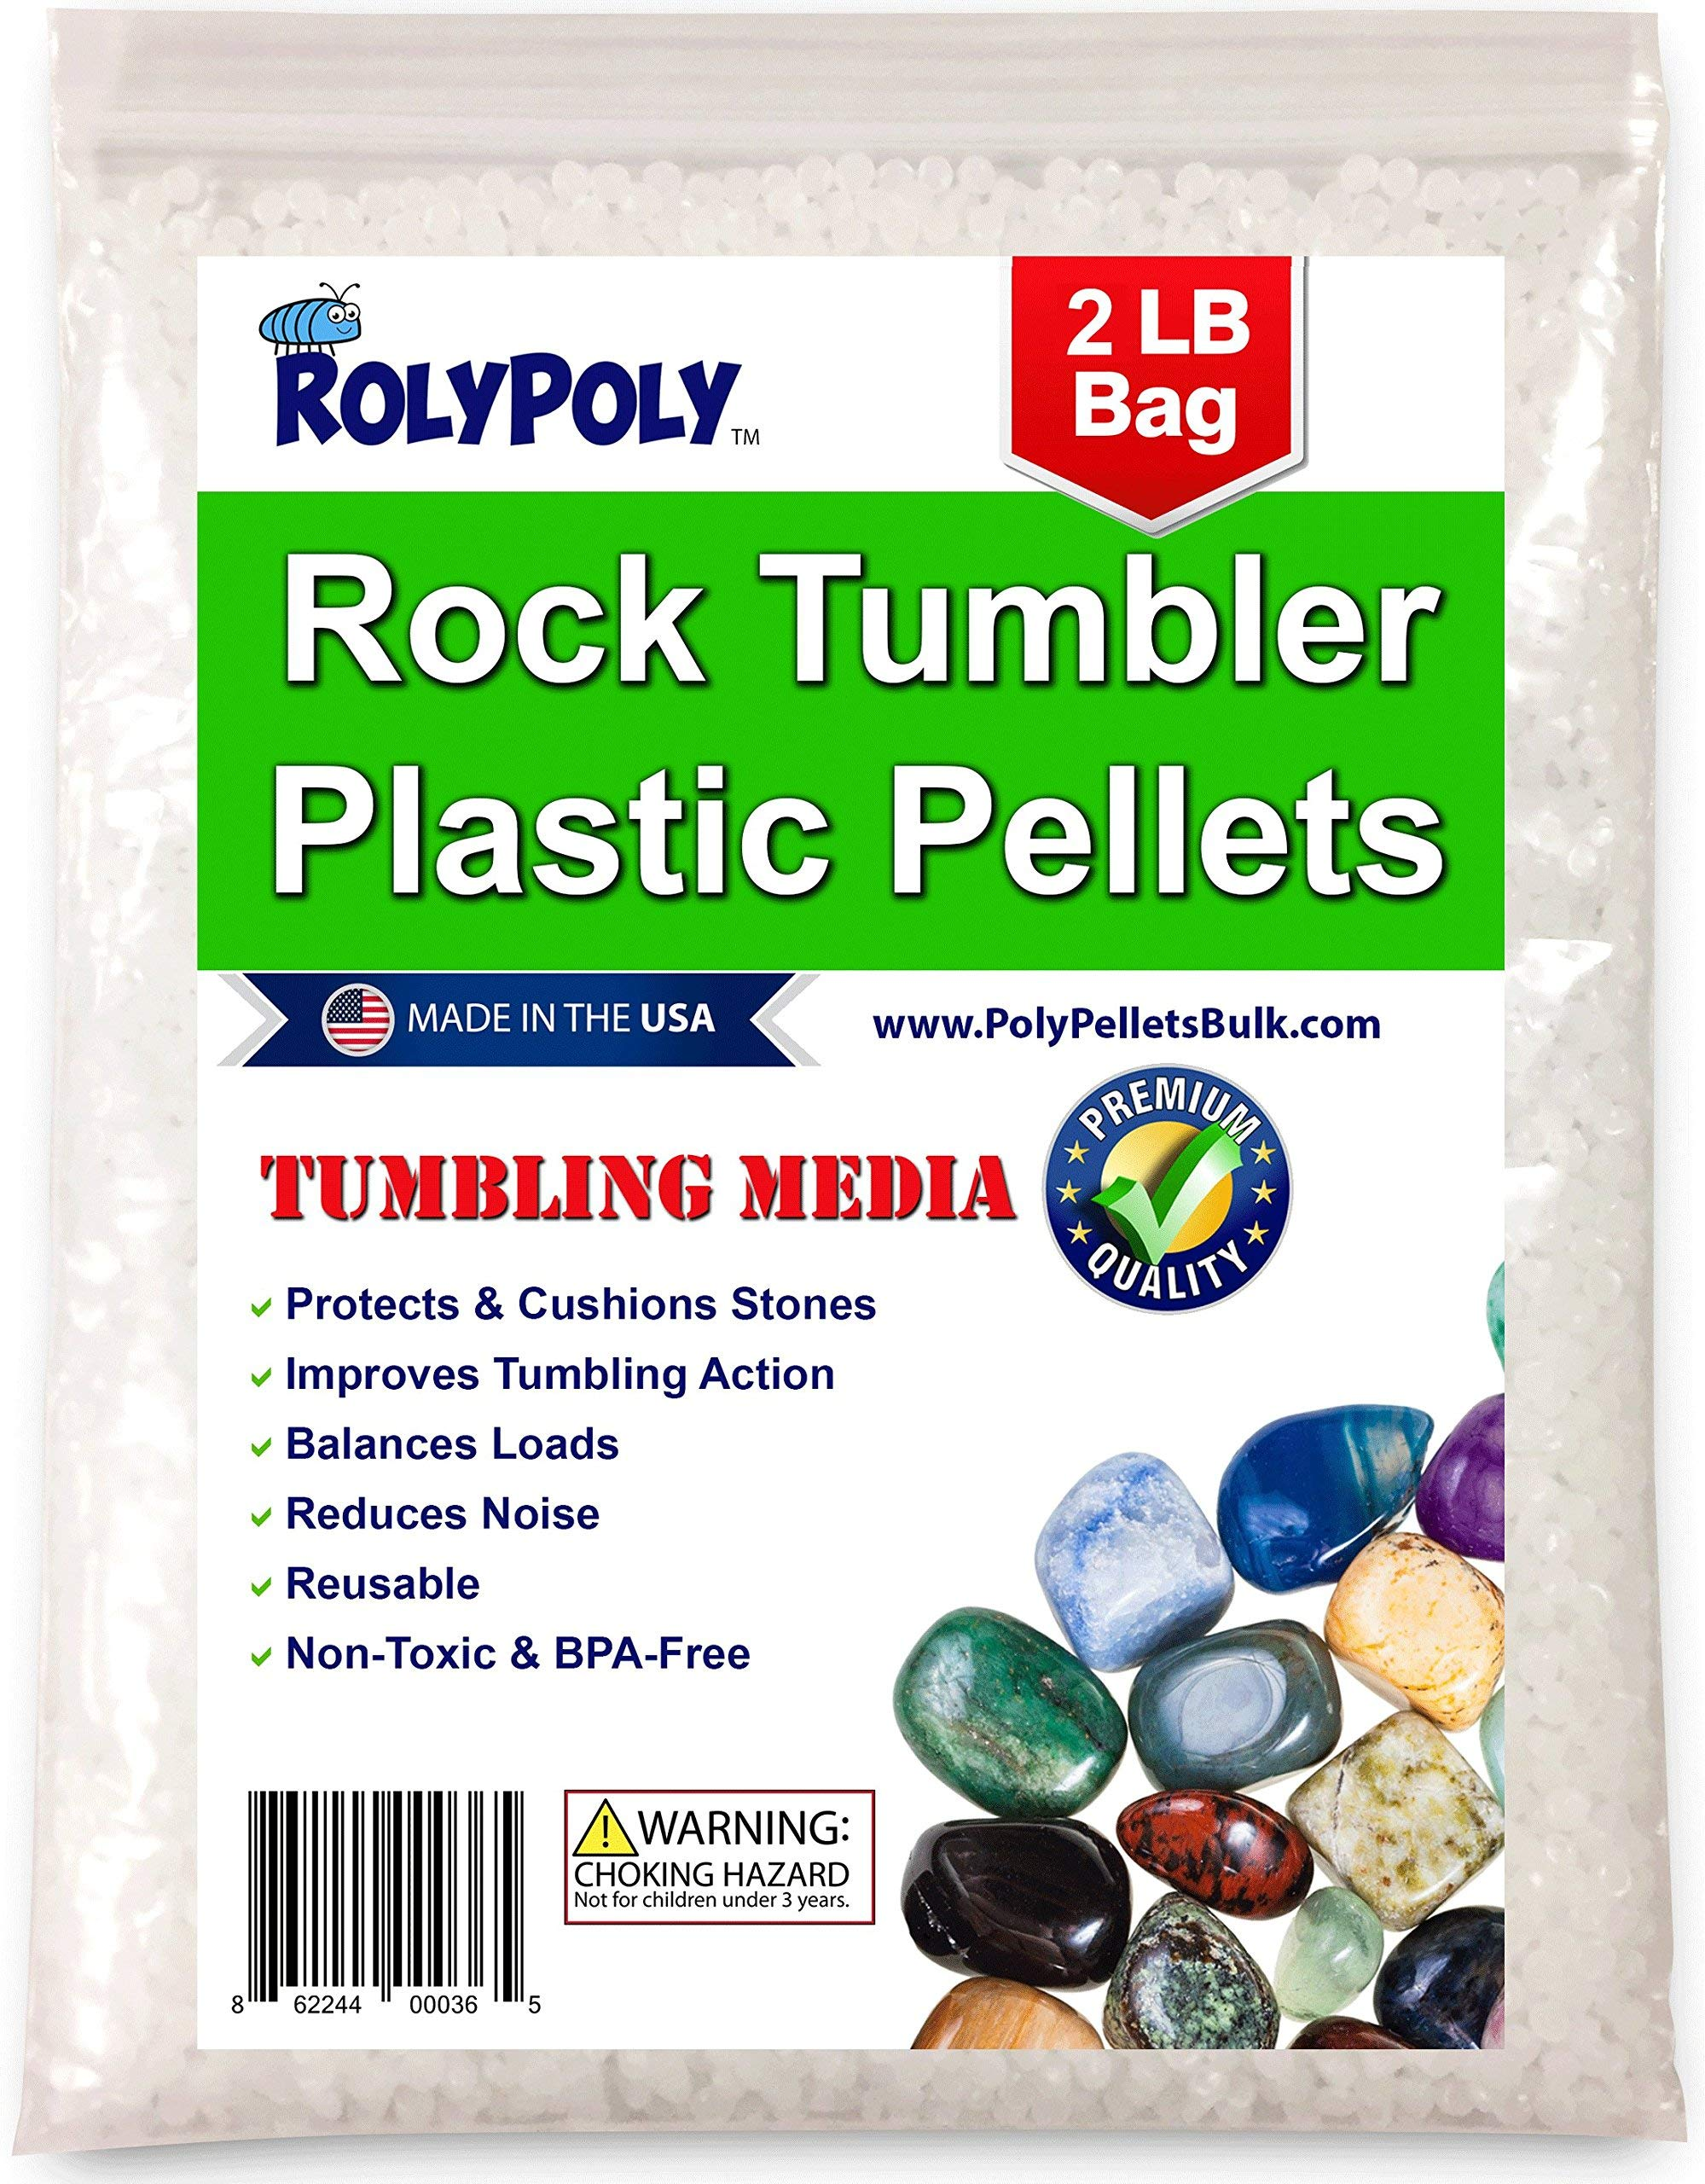 Plastic Pellets Rock Tumbling Media (2 LBS) for Rock Tumbler, Stone Tumbler, Rock Polisher, Filler Beads by RolyPoly